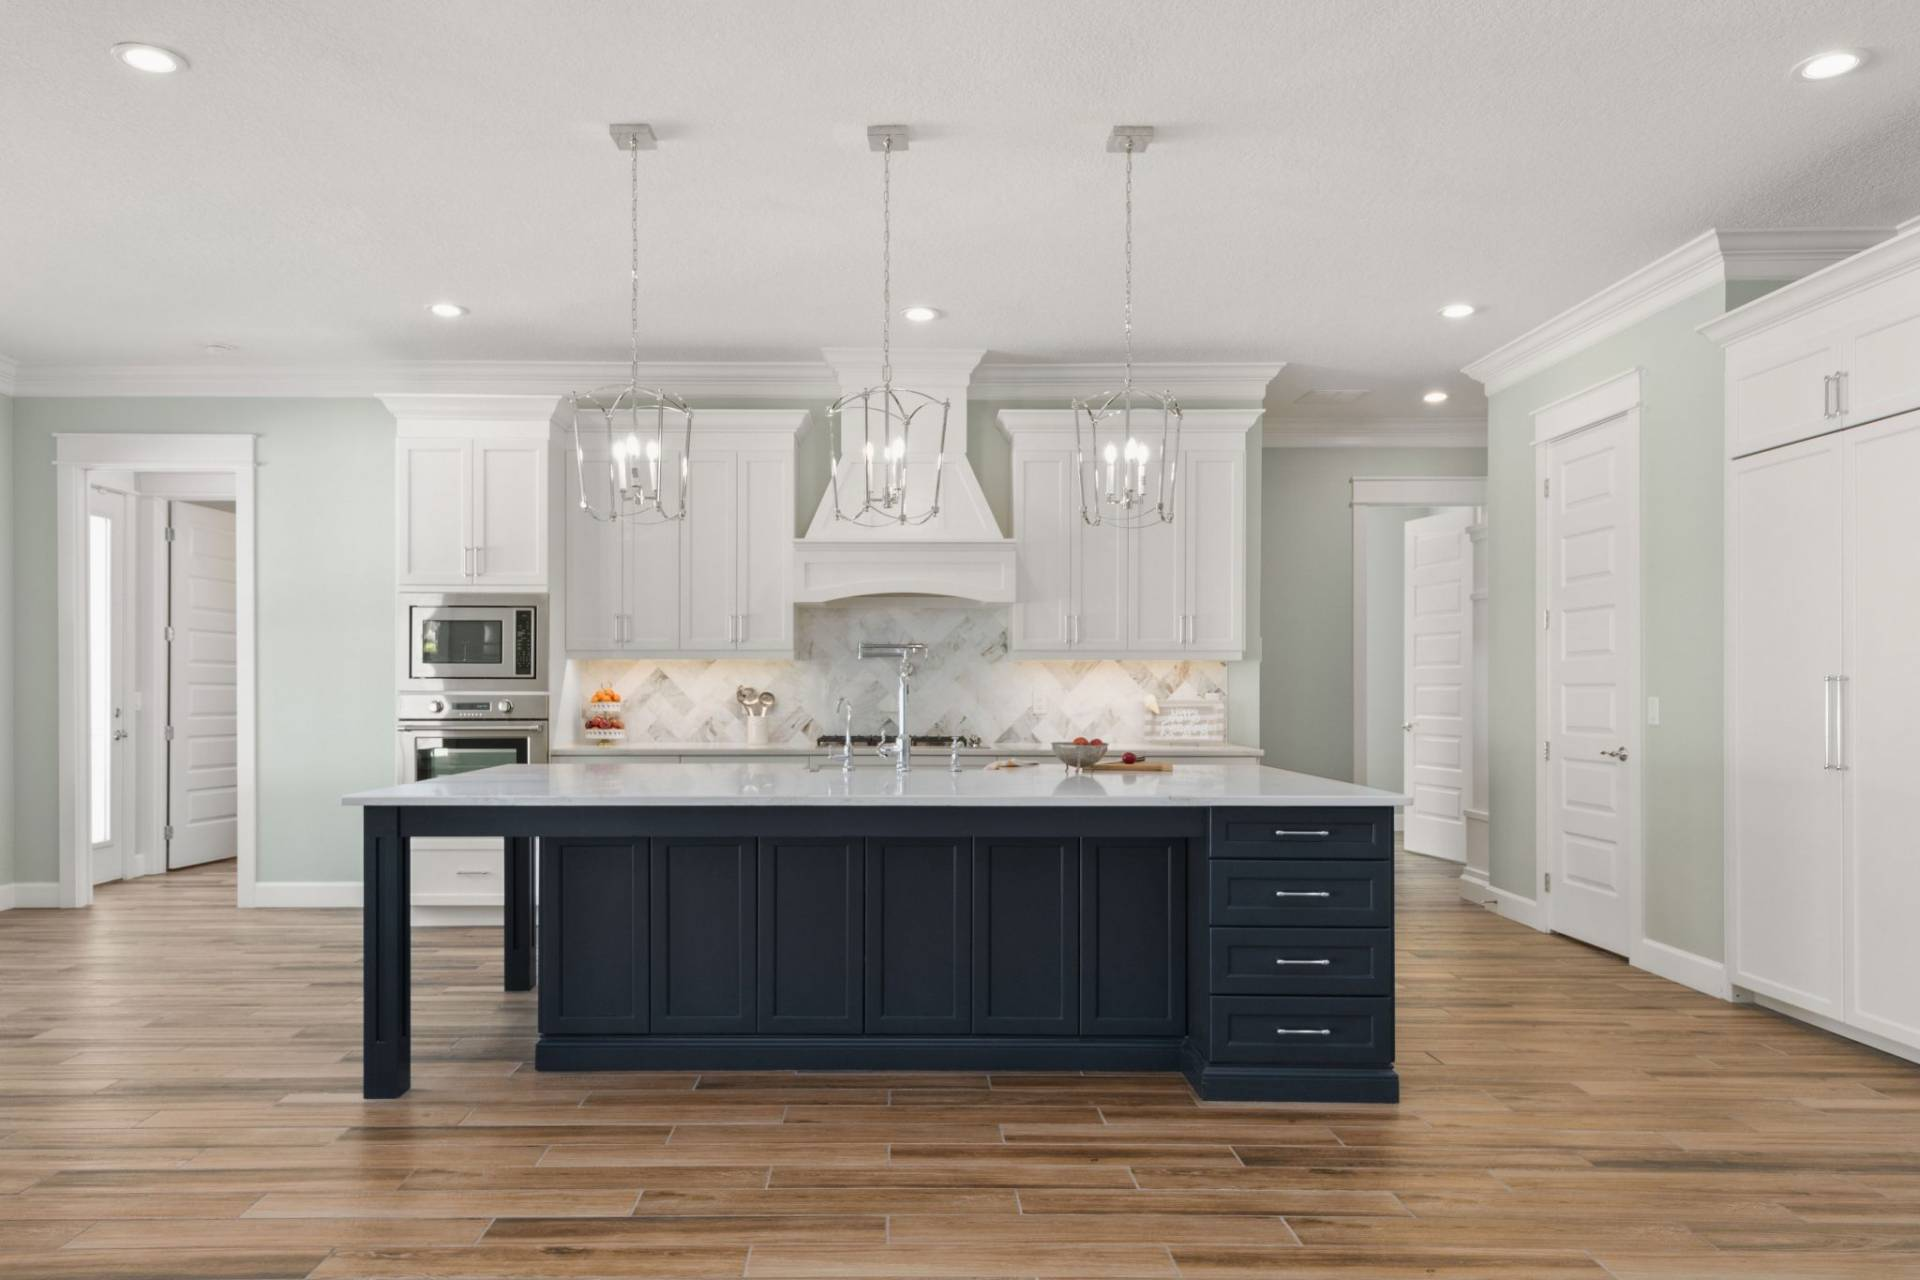 kitchen designed and built by New Legacy Homes, best of South Tampa homebuilder